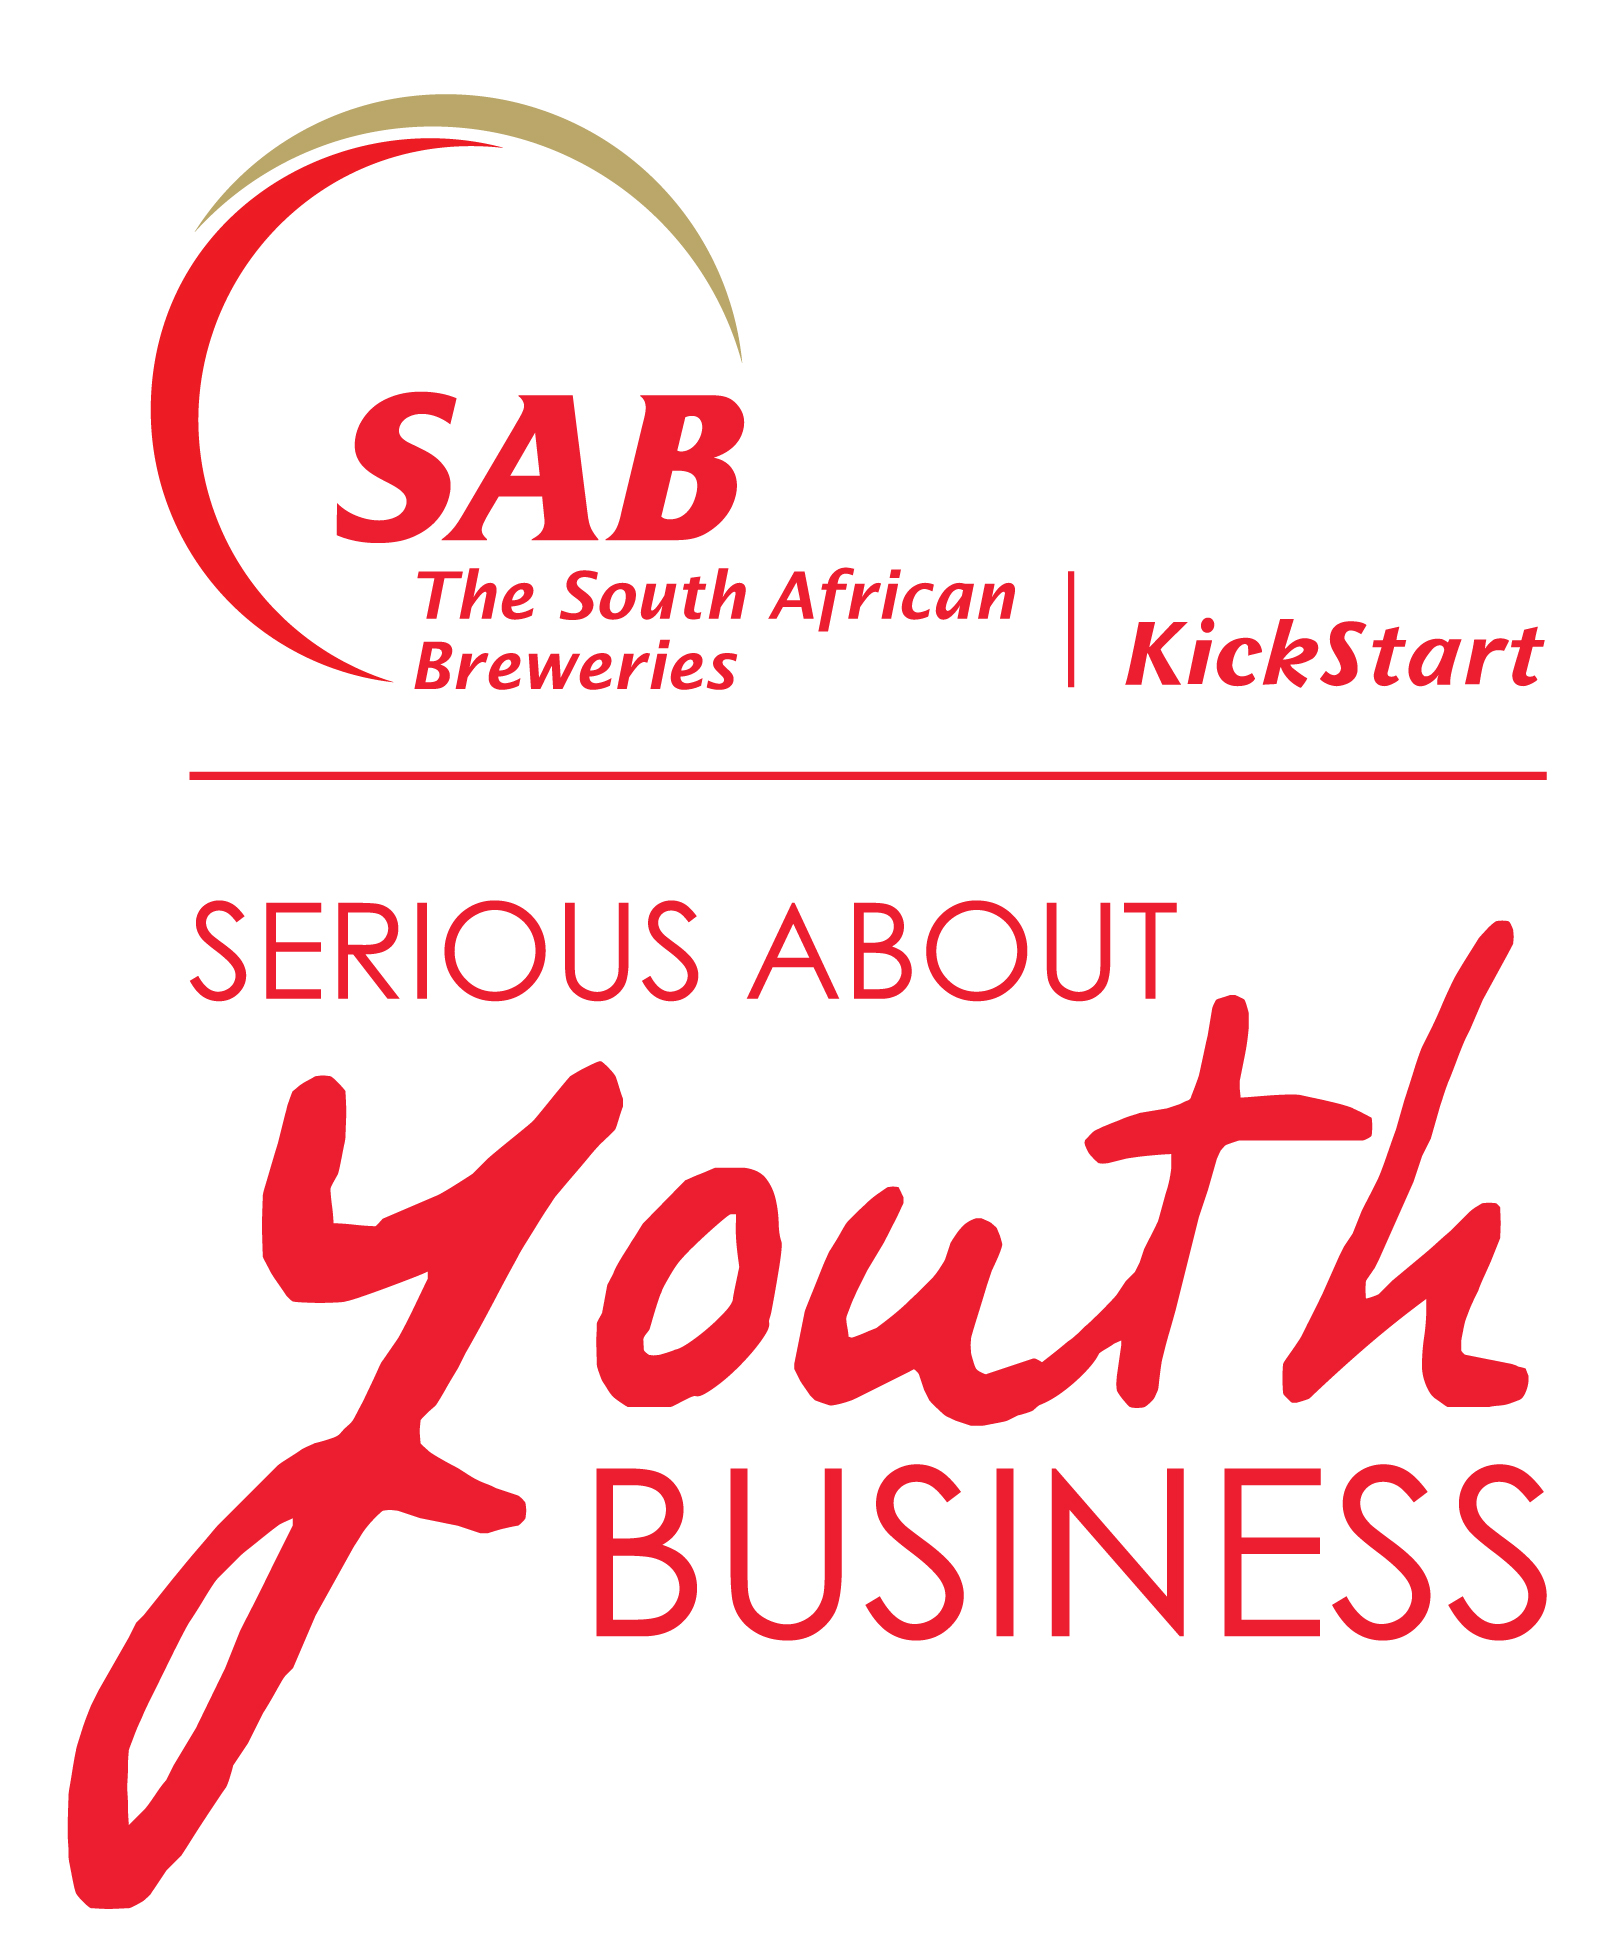 https://fs8.formsite.com/fetola2011/images/SAB_KickStart_Serious_about_youth_business-01.jpg